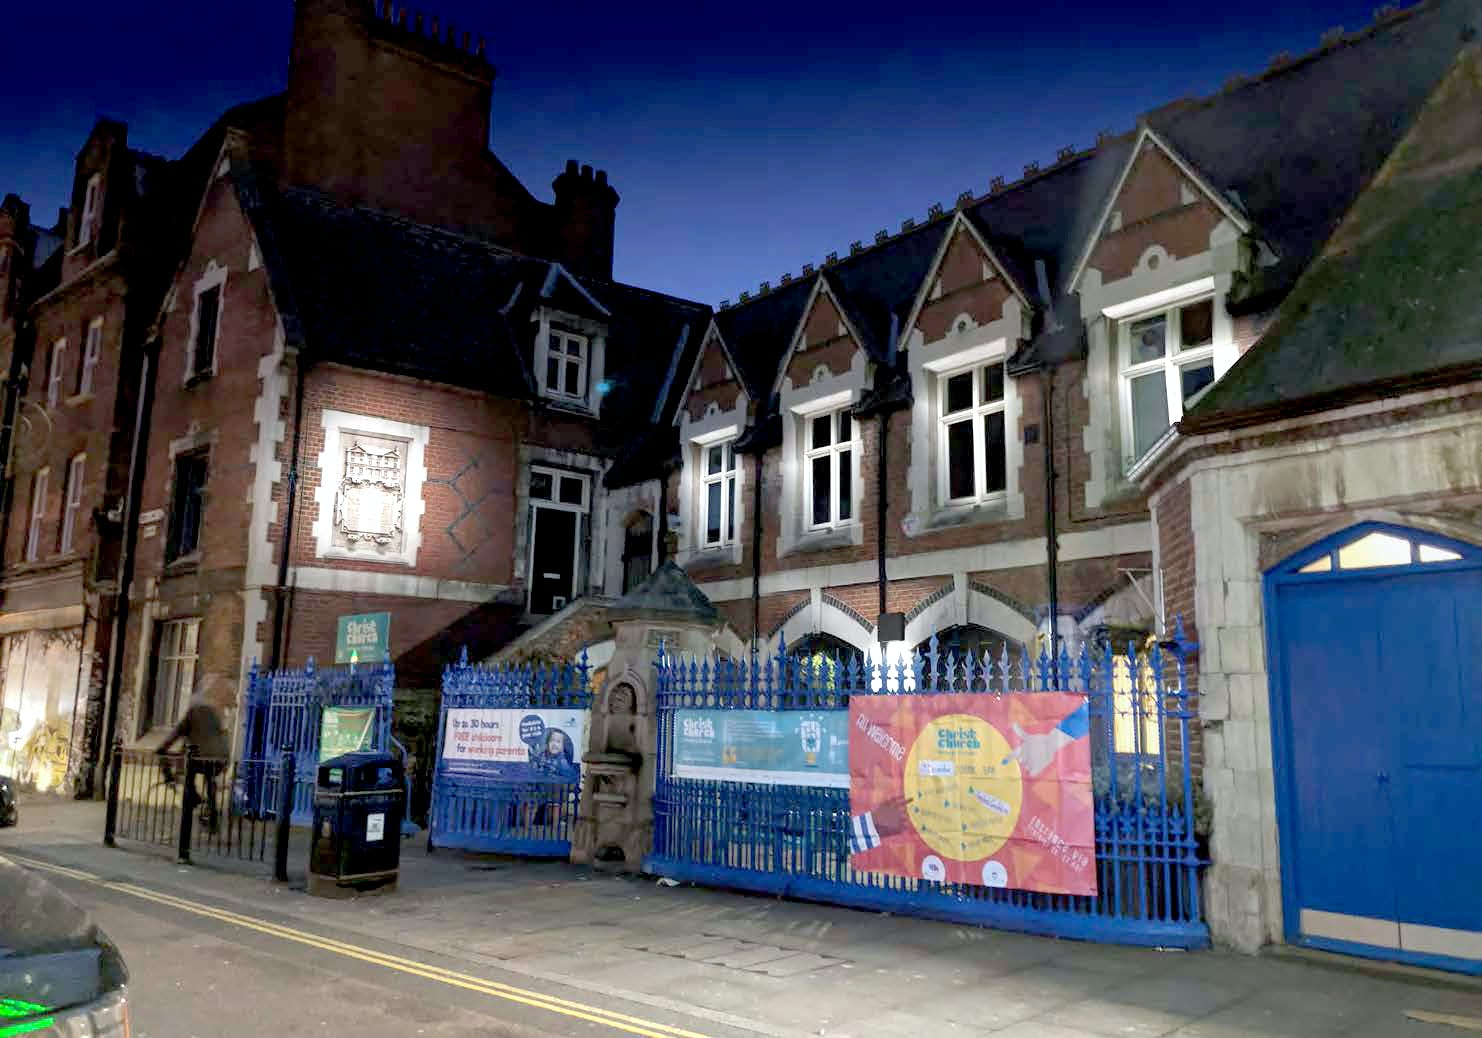 Enhanced lighting could highlight historic buildings like Christ Church C of E Primary School